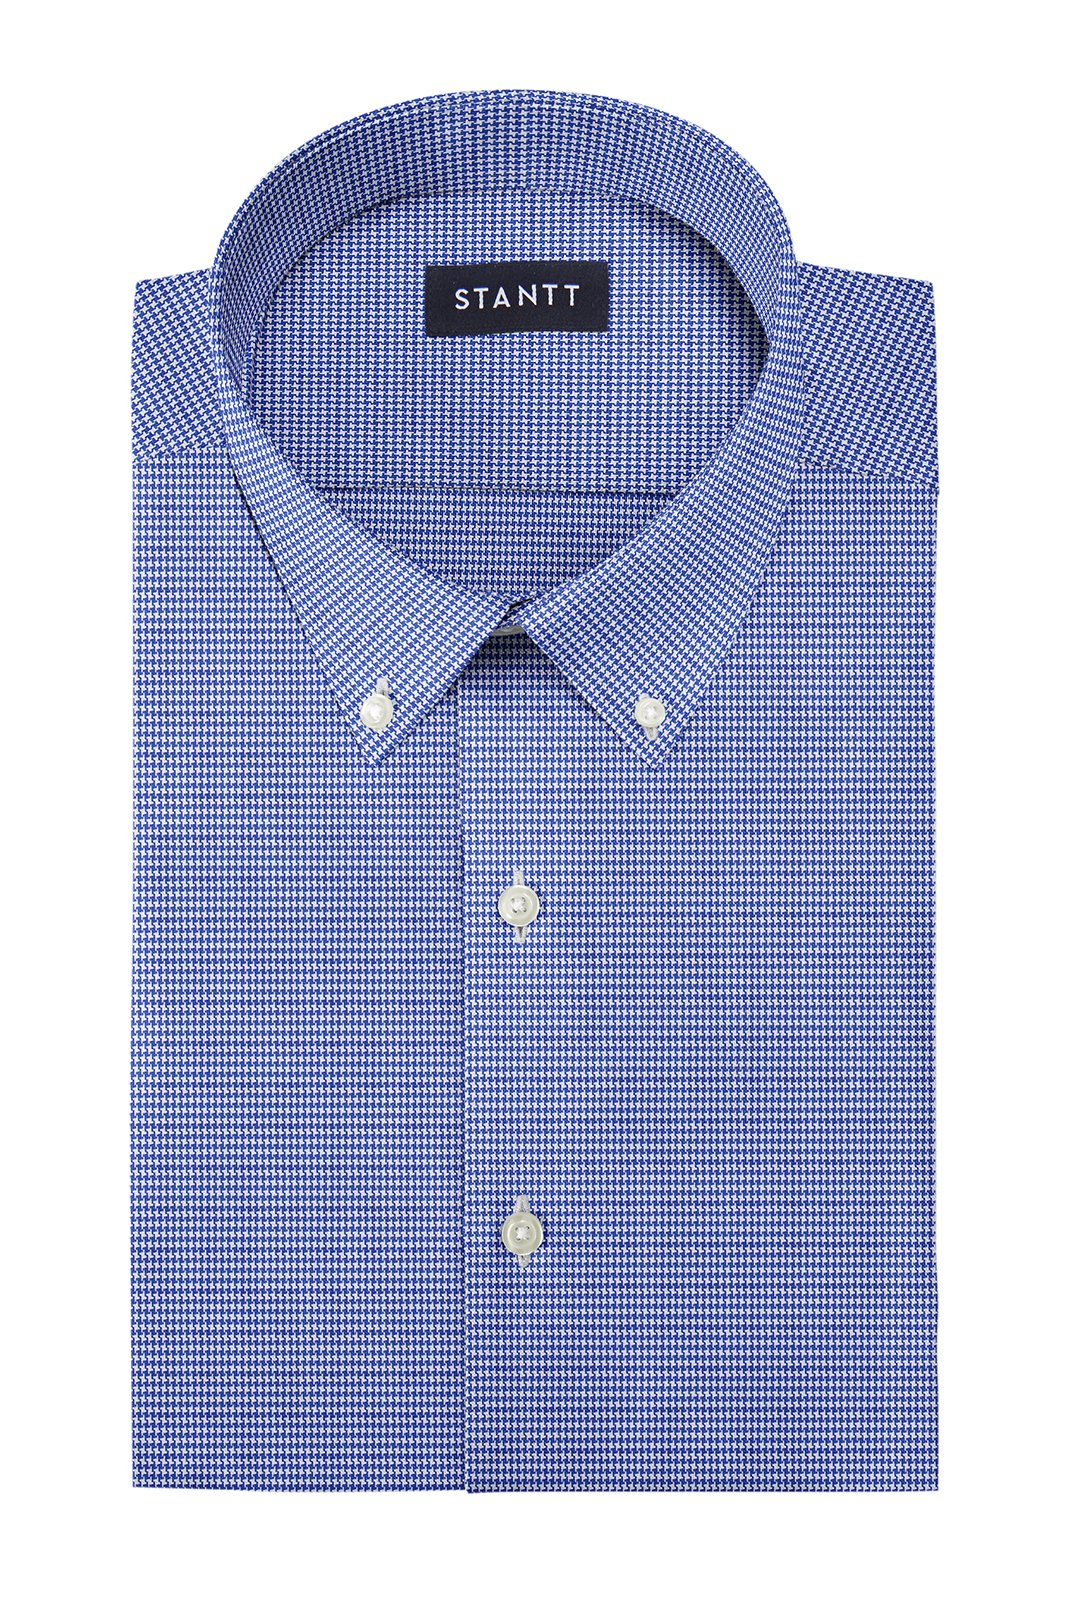 Navy Fancy Houndstooth: Button-Down Collar, Barrel Cuff